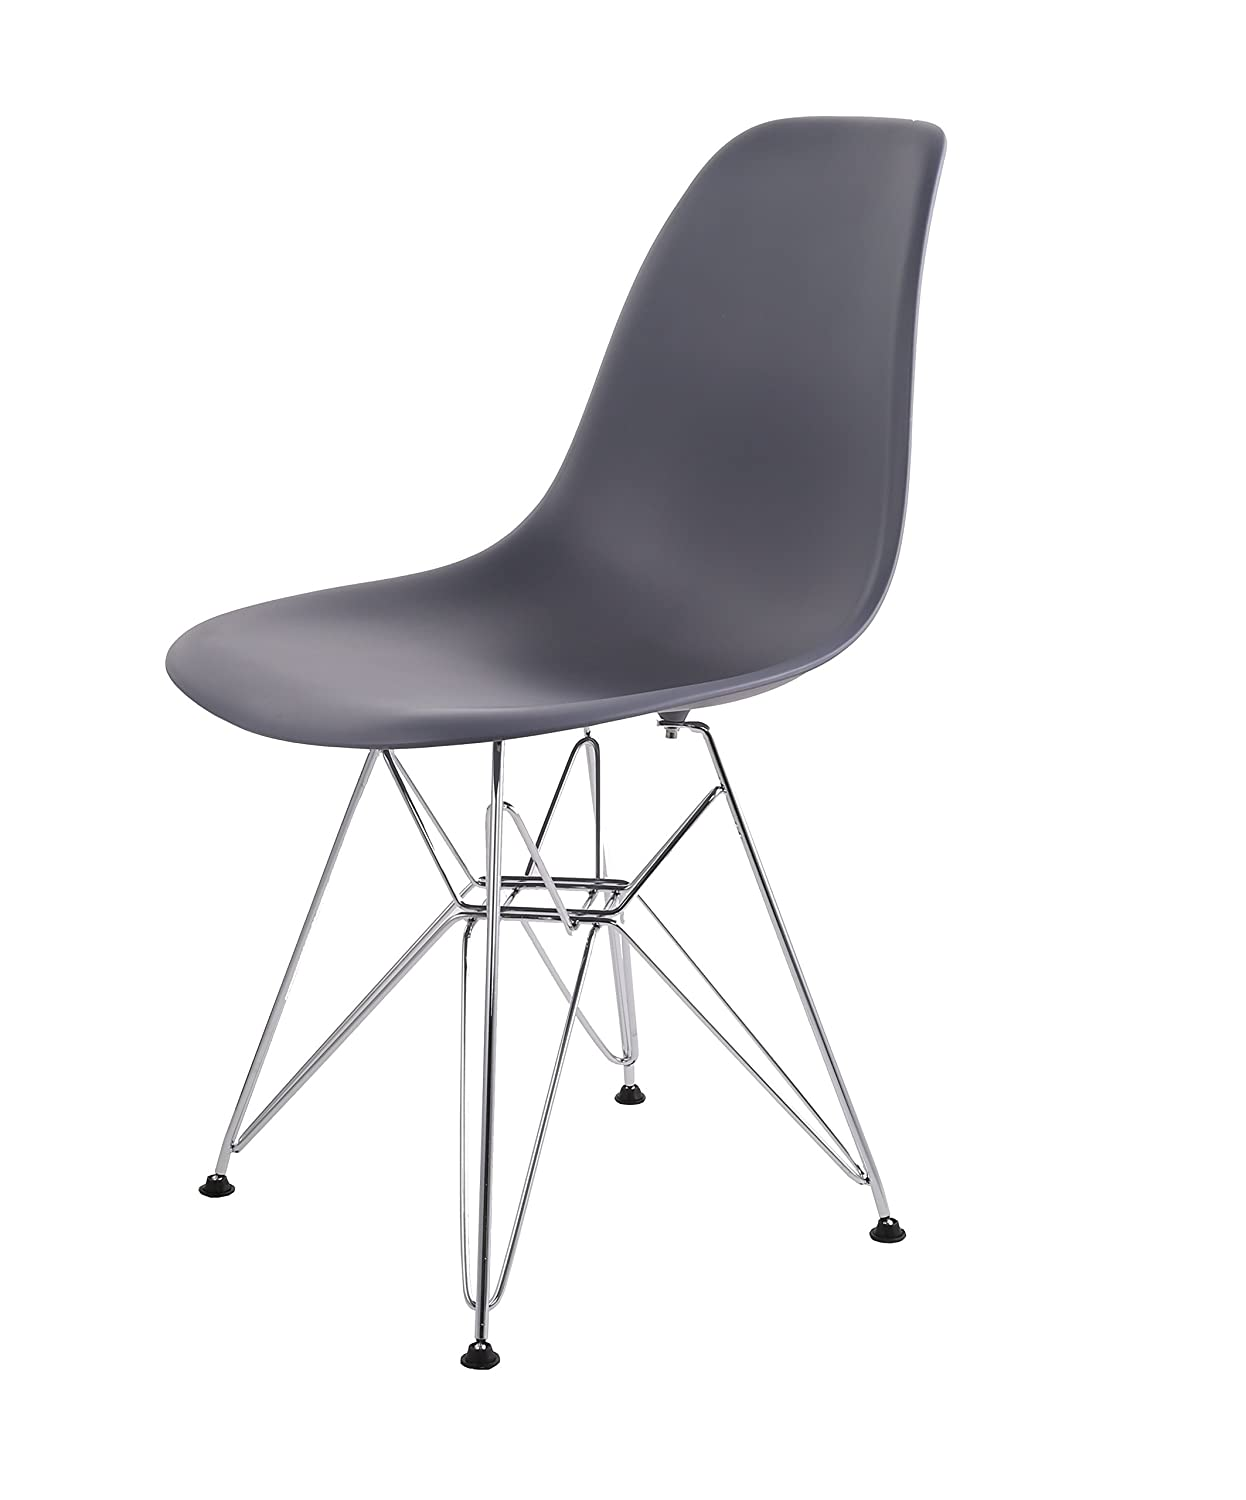 HNNHOME Eames Inspired Eiffel DSR Dining Plastic Chairs Modern Lounge Office Furniture Panton (Steel Grey)